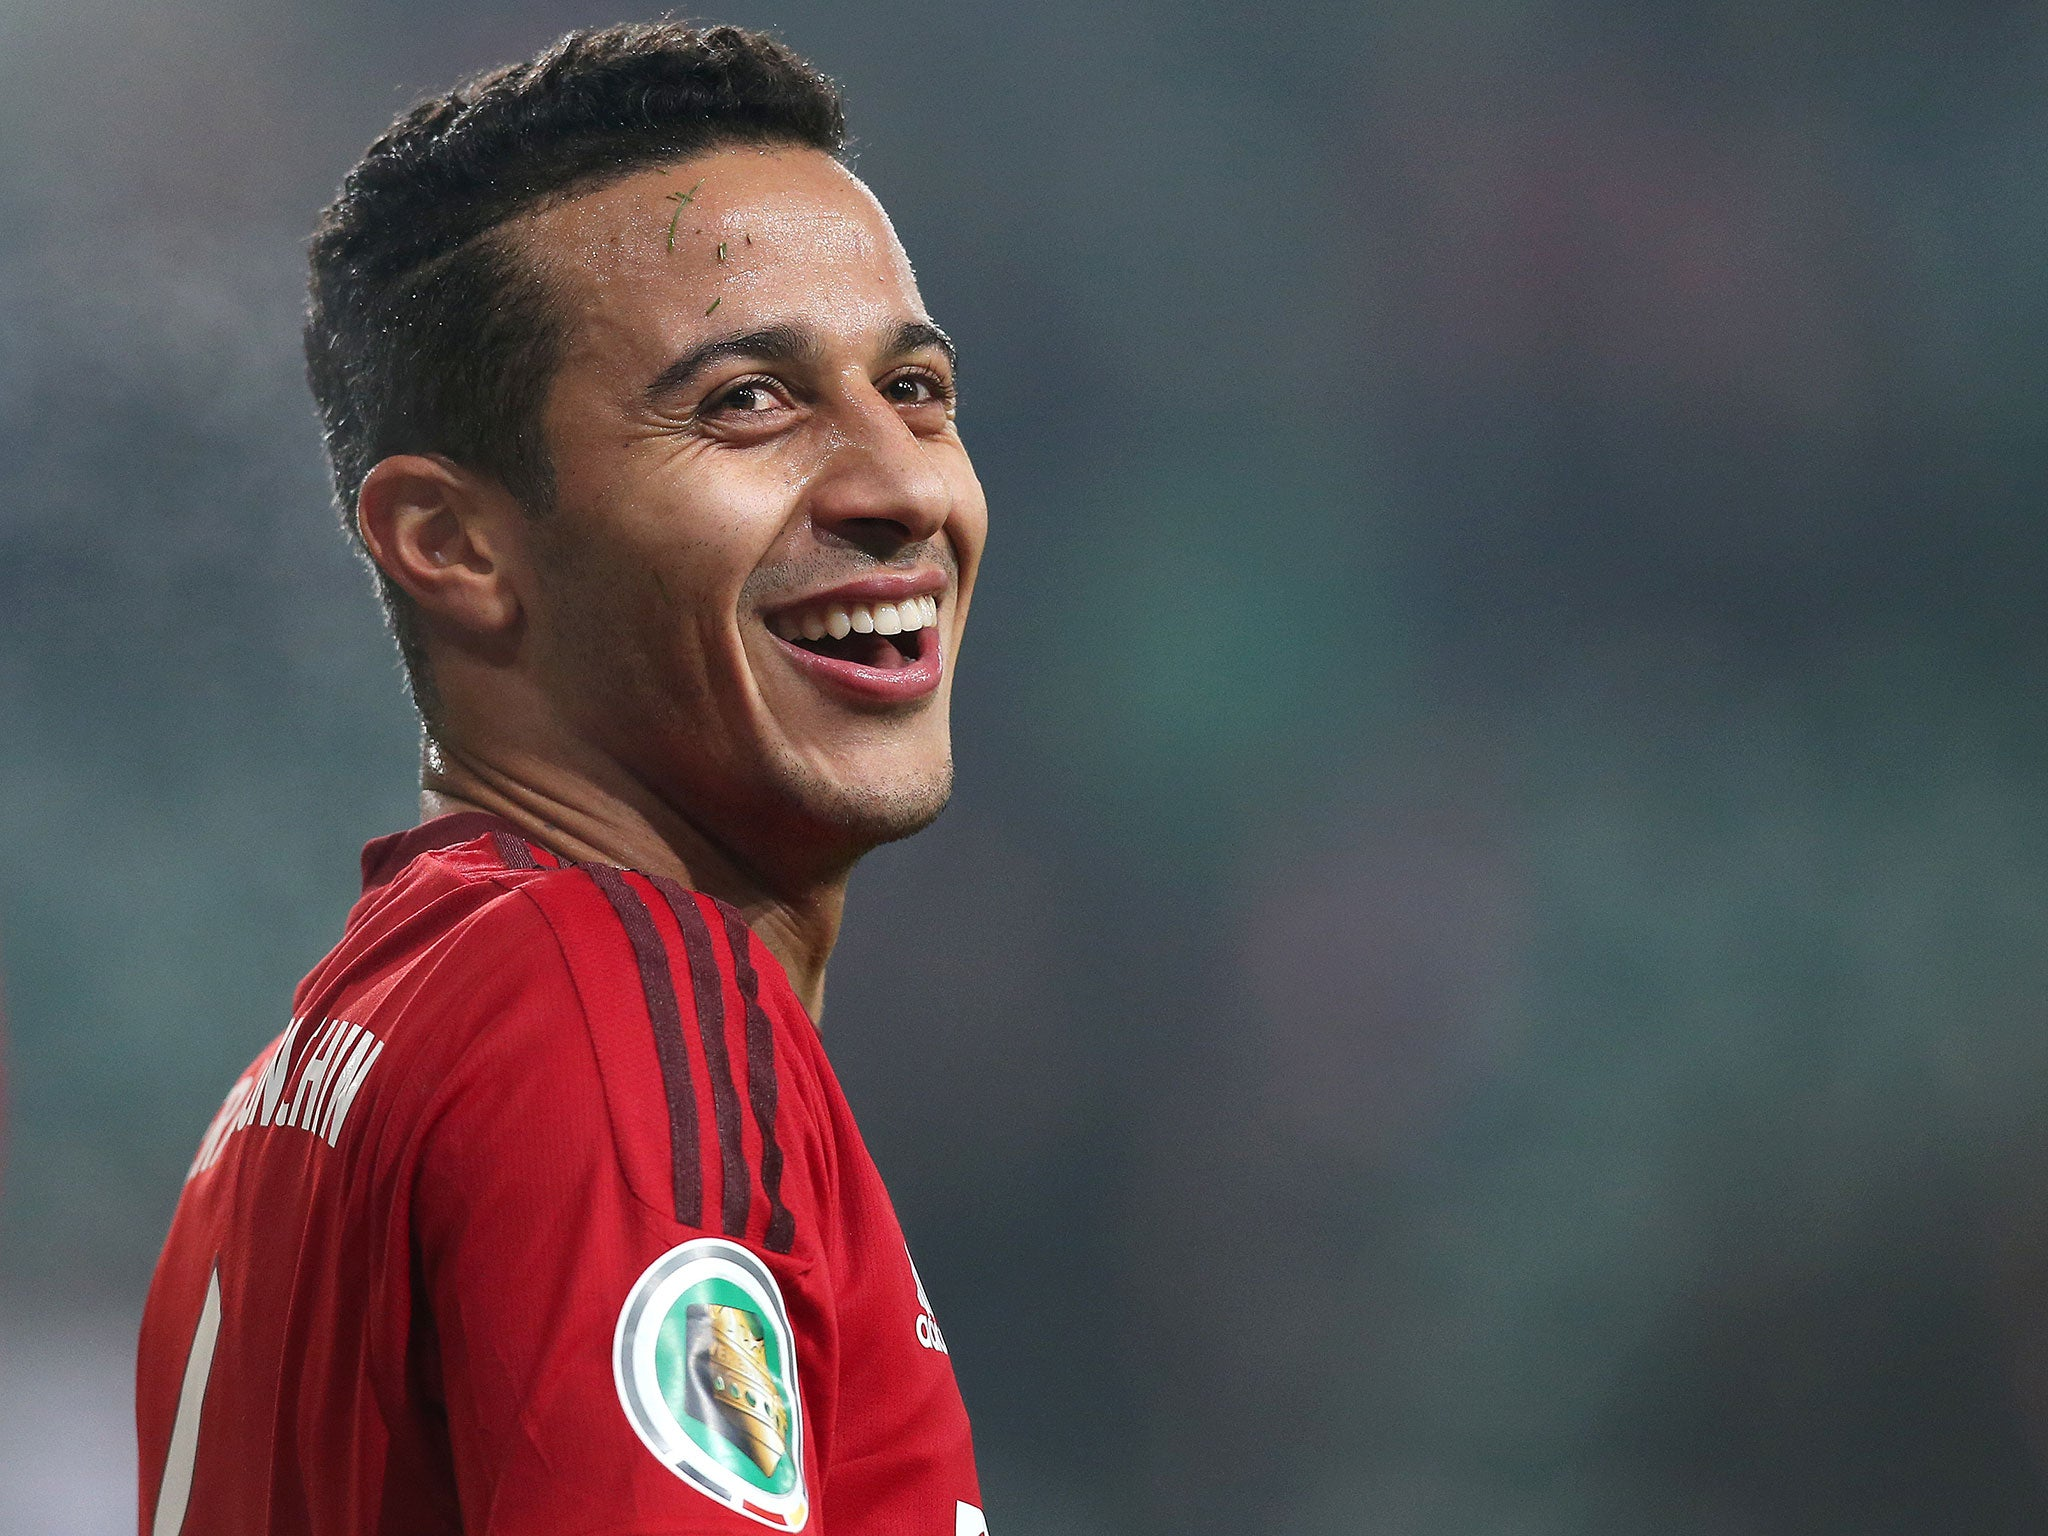 Live broadcast of Liverpool transfer news: the latest news of Thiago Alcantara, the links of Mohamed Salah and Giorinho Vinaldum with Barcelona, in addition to the updates of the English Premier League.